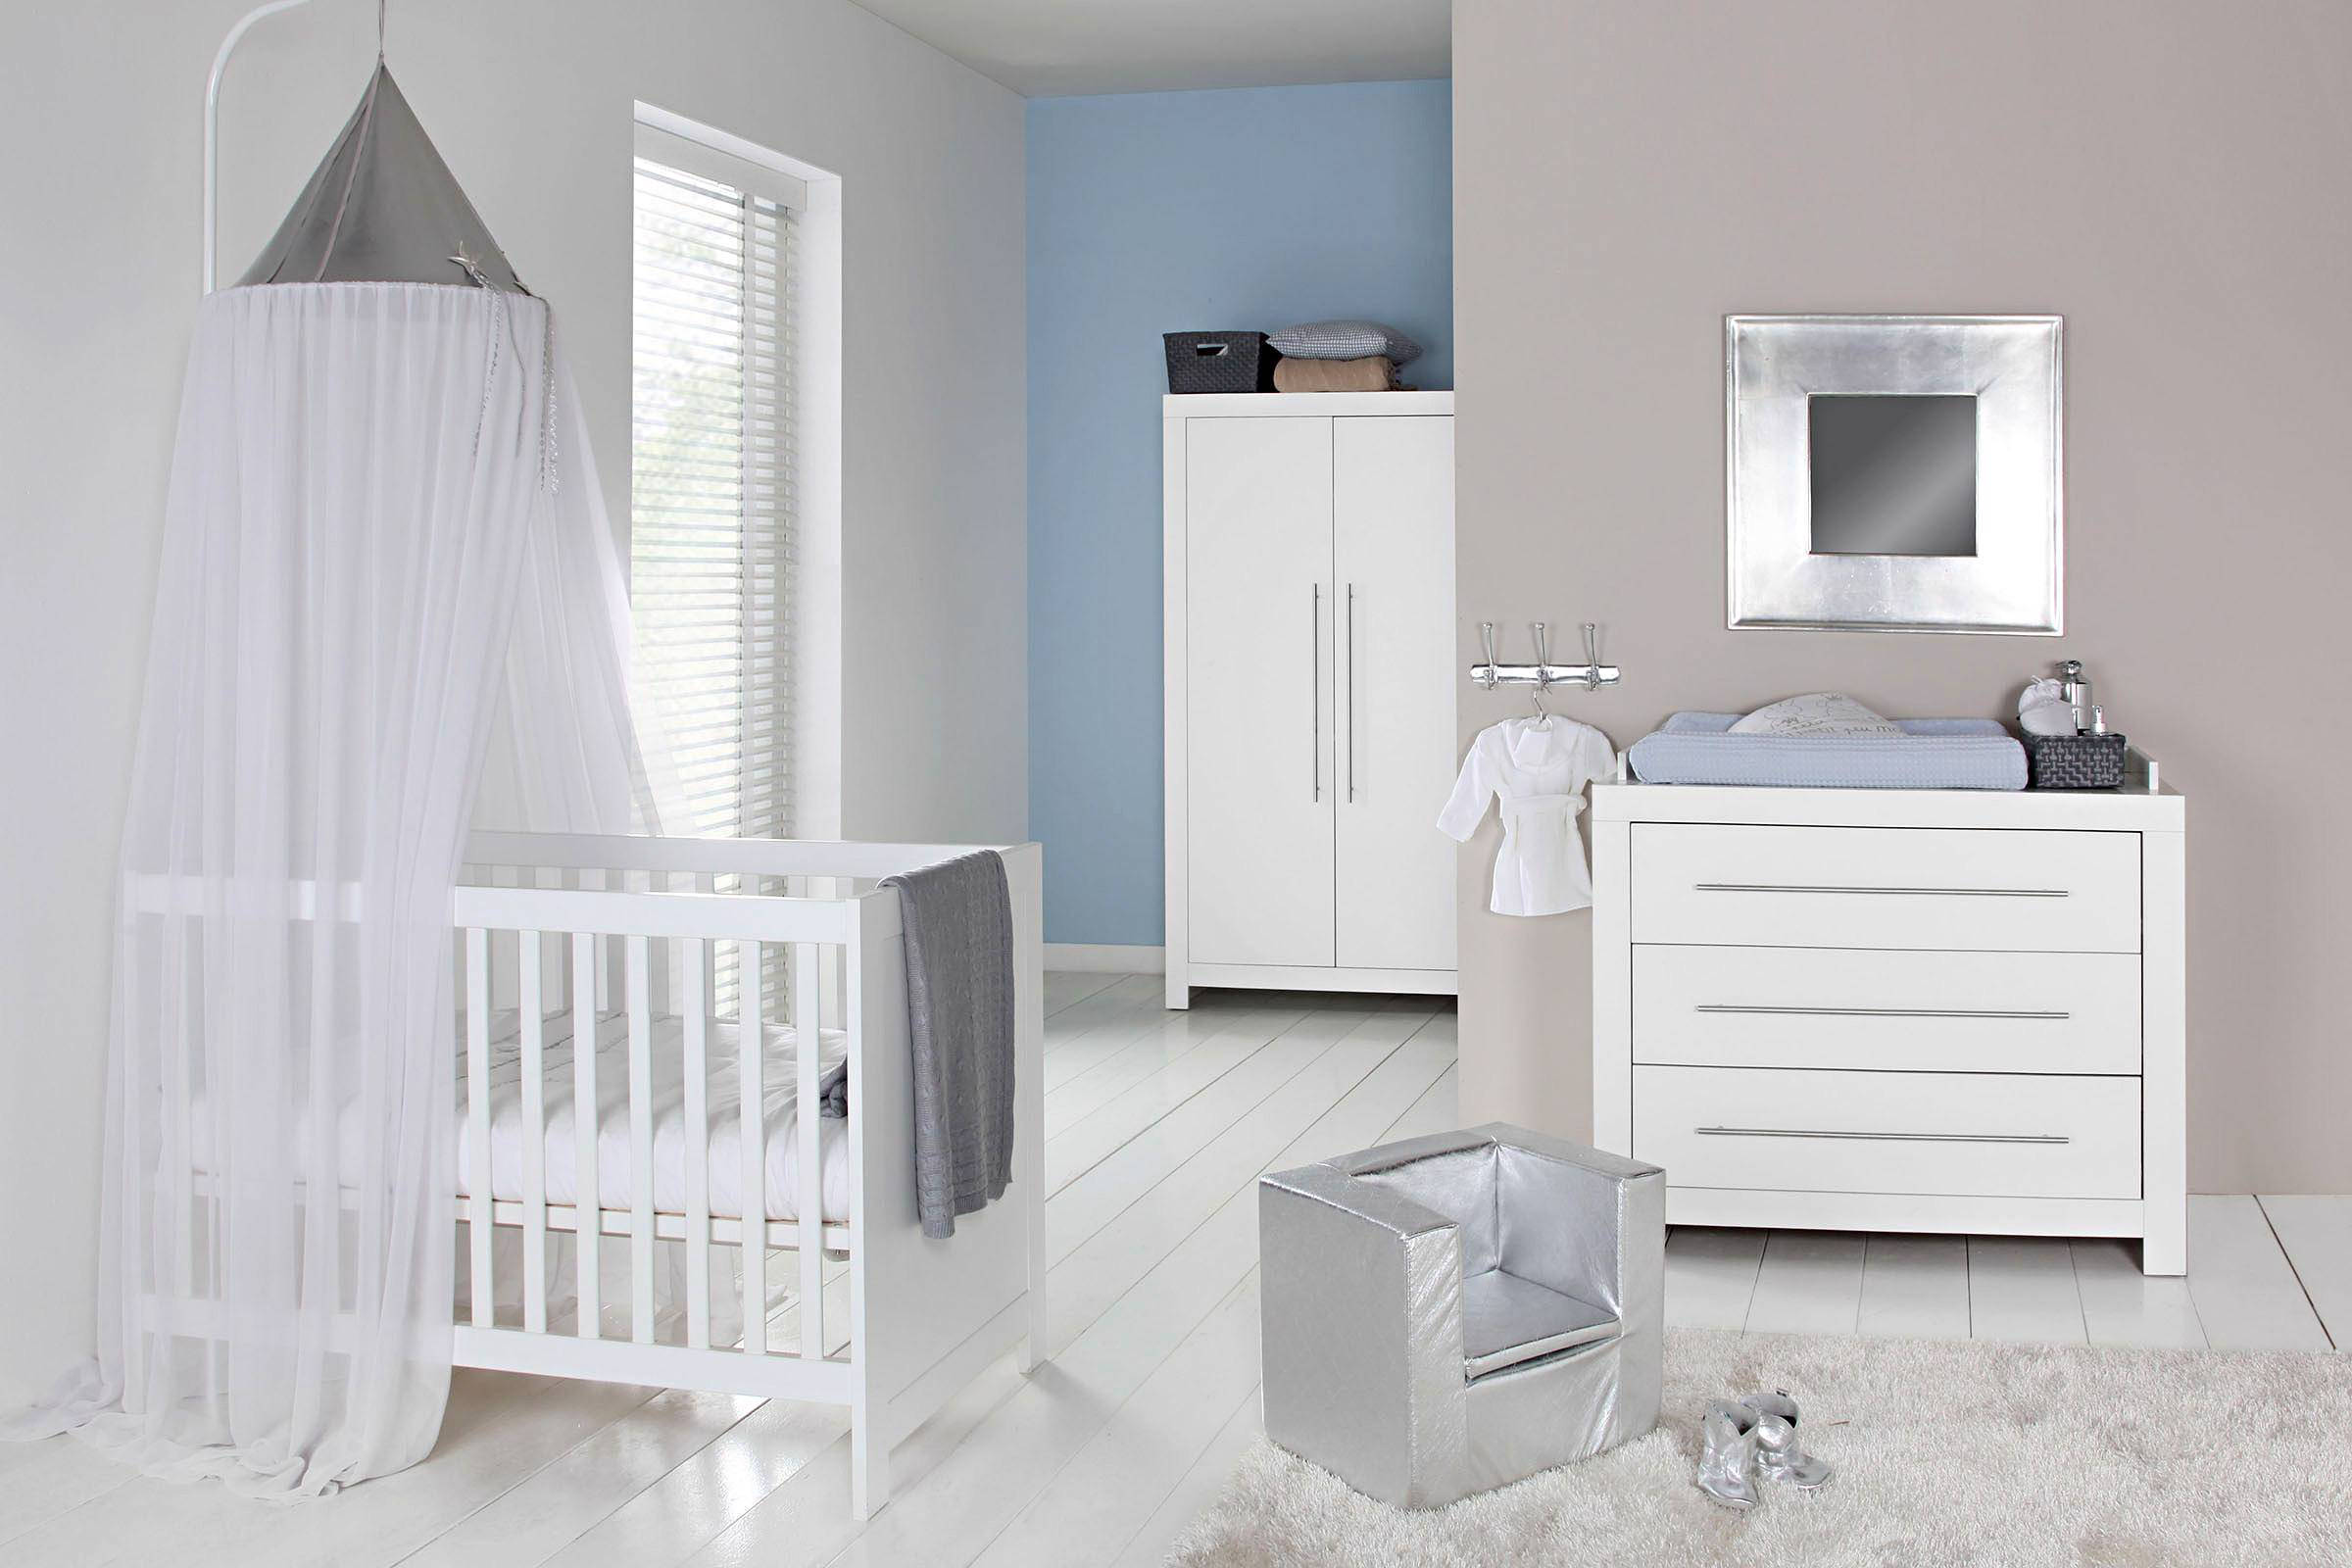 Europe Baby Vittoria babykamer (ledikant + commode) wit